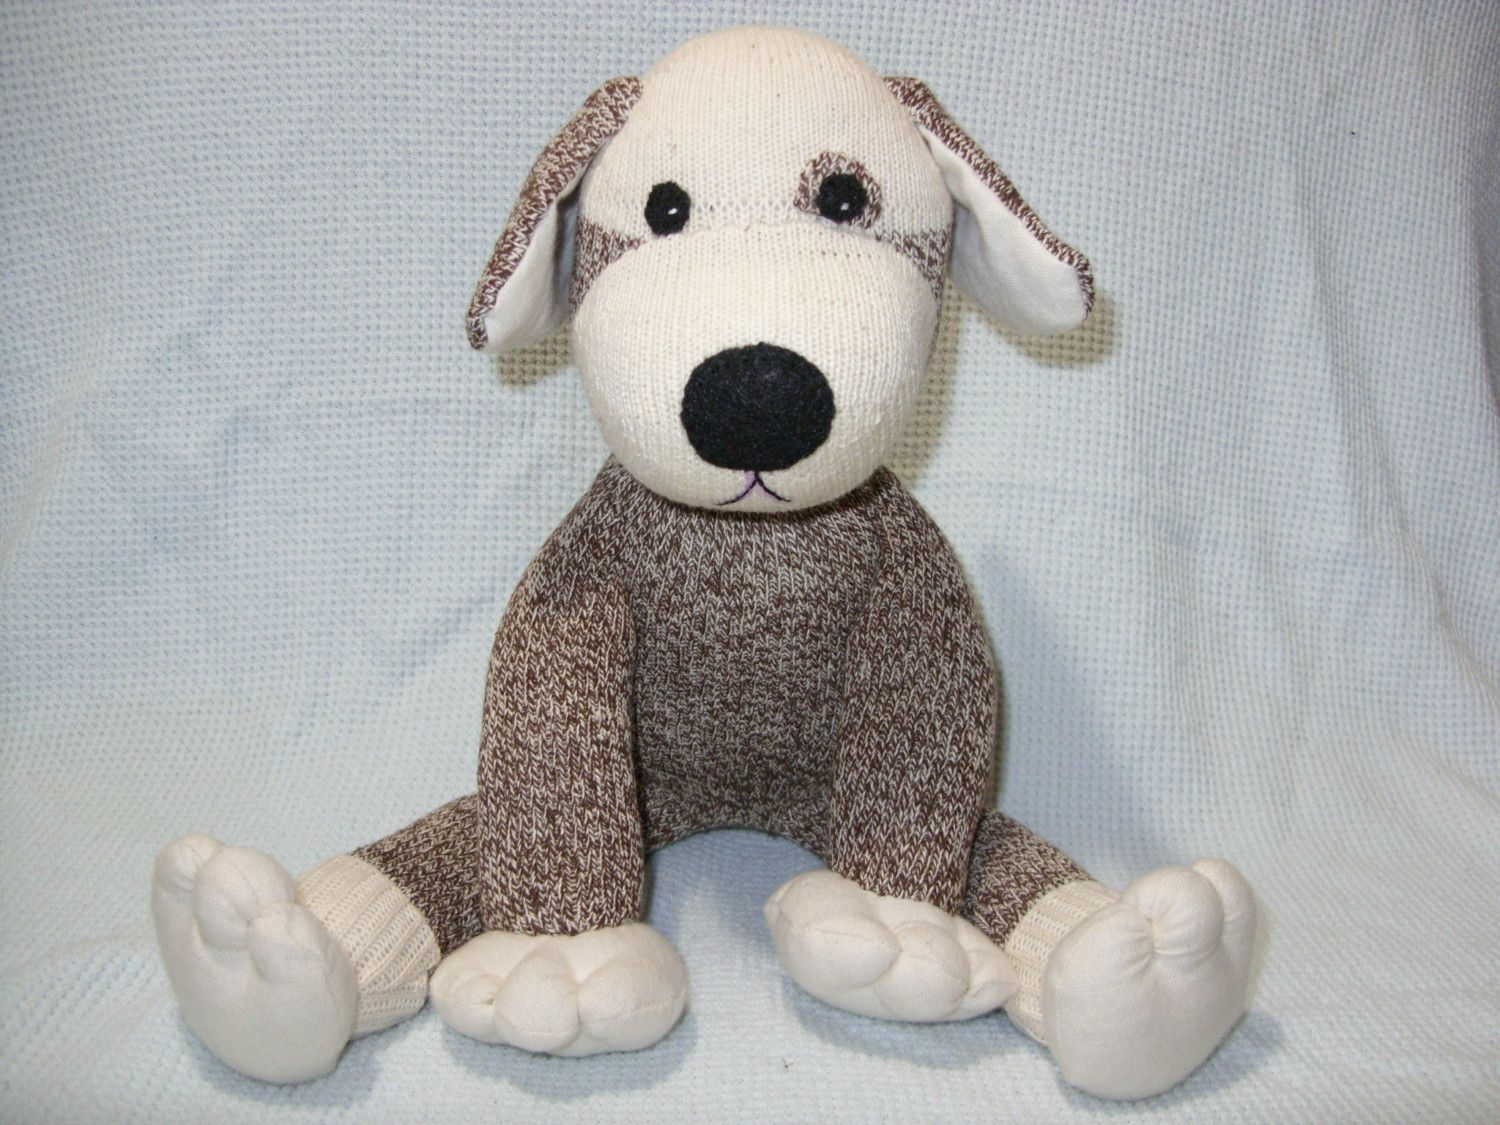 Sock puppy toy vintage site question